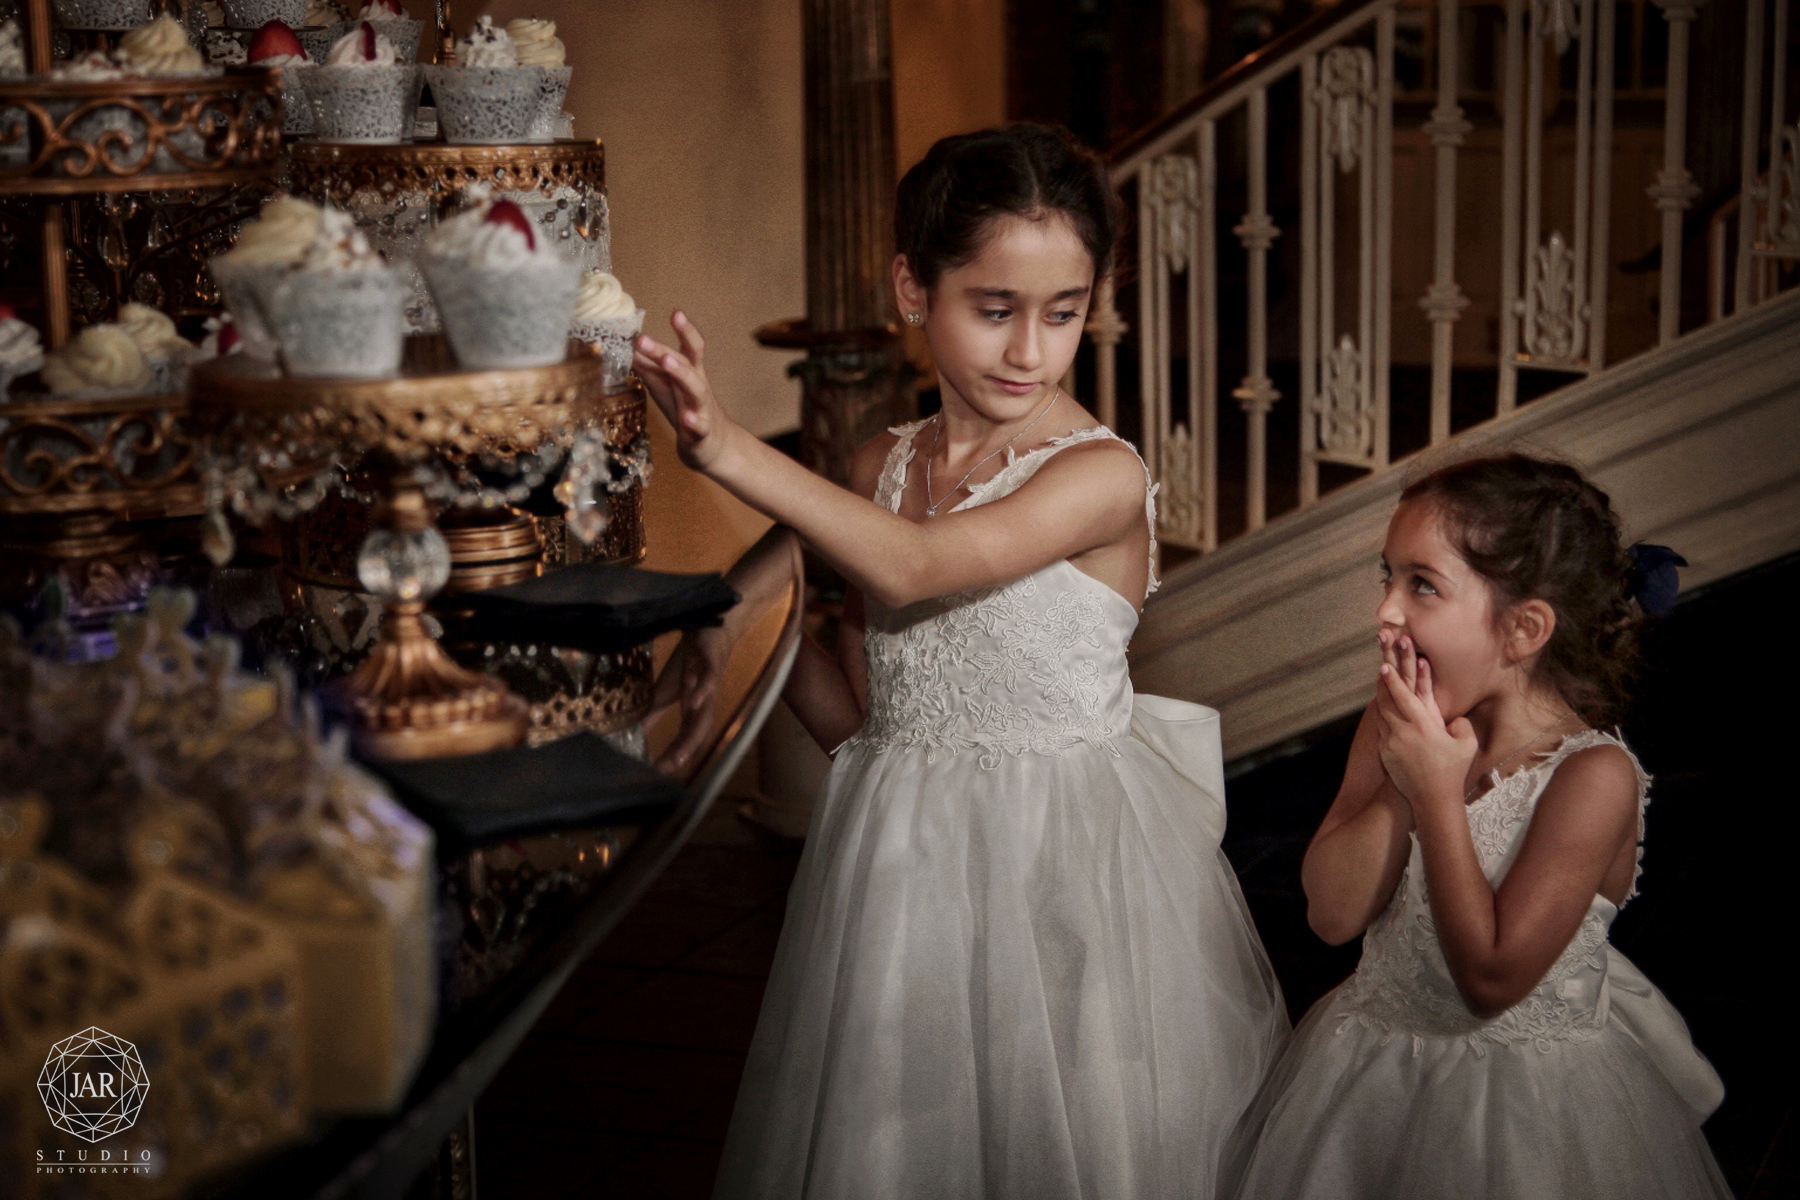 37-wedding-funny-flower-girls-cupcakes-jarstudio-photography-orlando.JPG